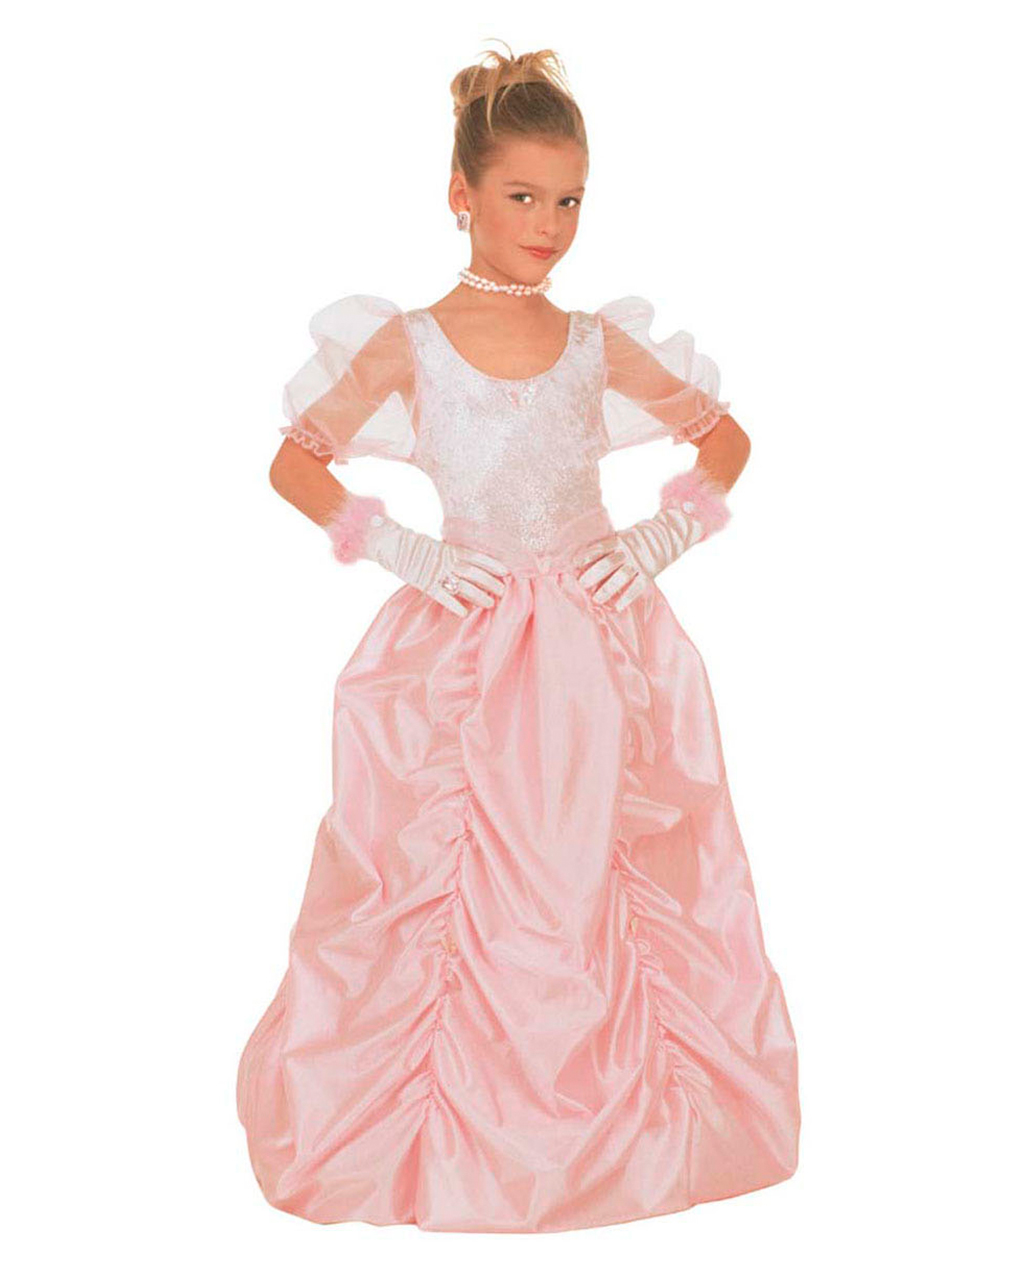 Cinderella Princess Kids Costume S  sc 1 st  Horror-Shop.com & Cinderella Princess Kids Costume S | Fairytale Costumes for girls ...